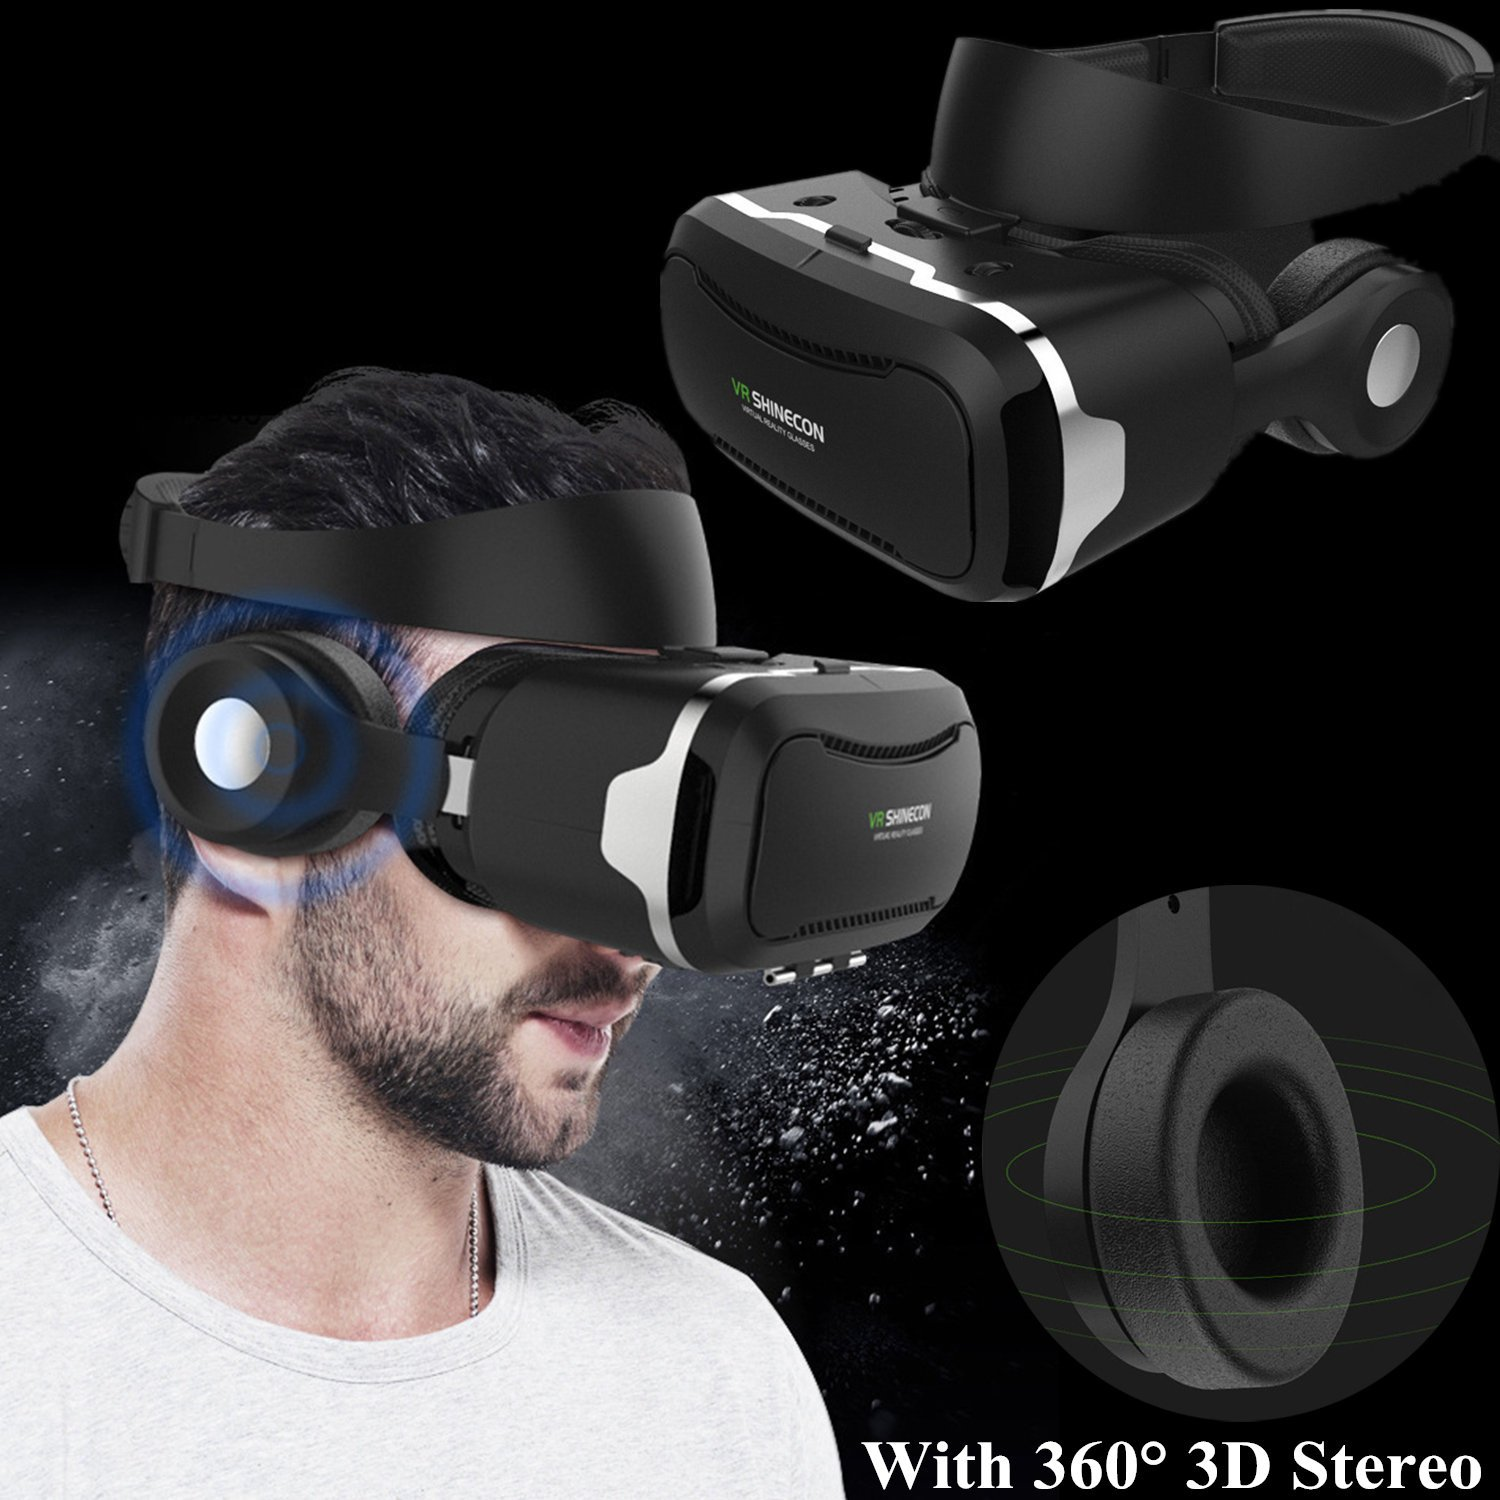 "3D Virtual Reality Headset, Tsanglight VR Headset/Glasses with Built-in 3D Headphones for 4.5-6.0"" Android/IOS for Samsung Galaxy S7 Edge S6, iPhone 7 6 6S Plus etc"